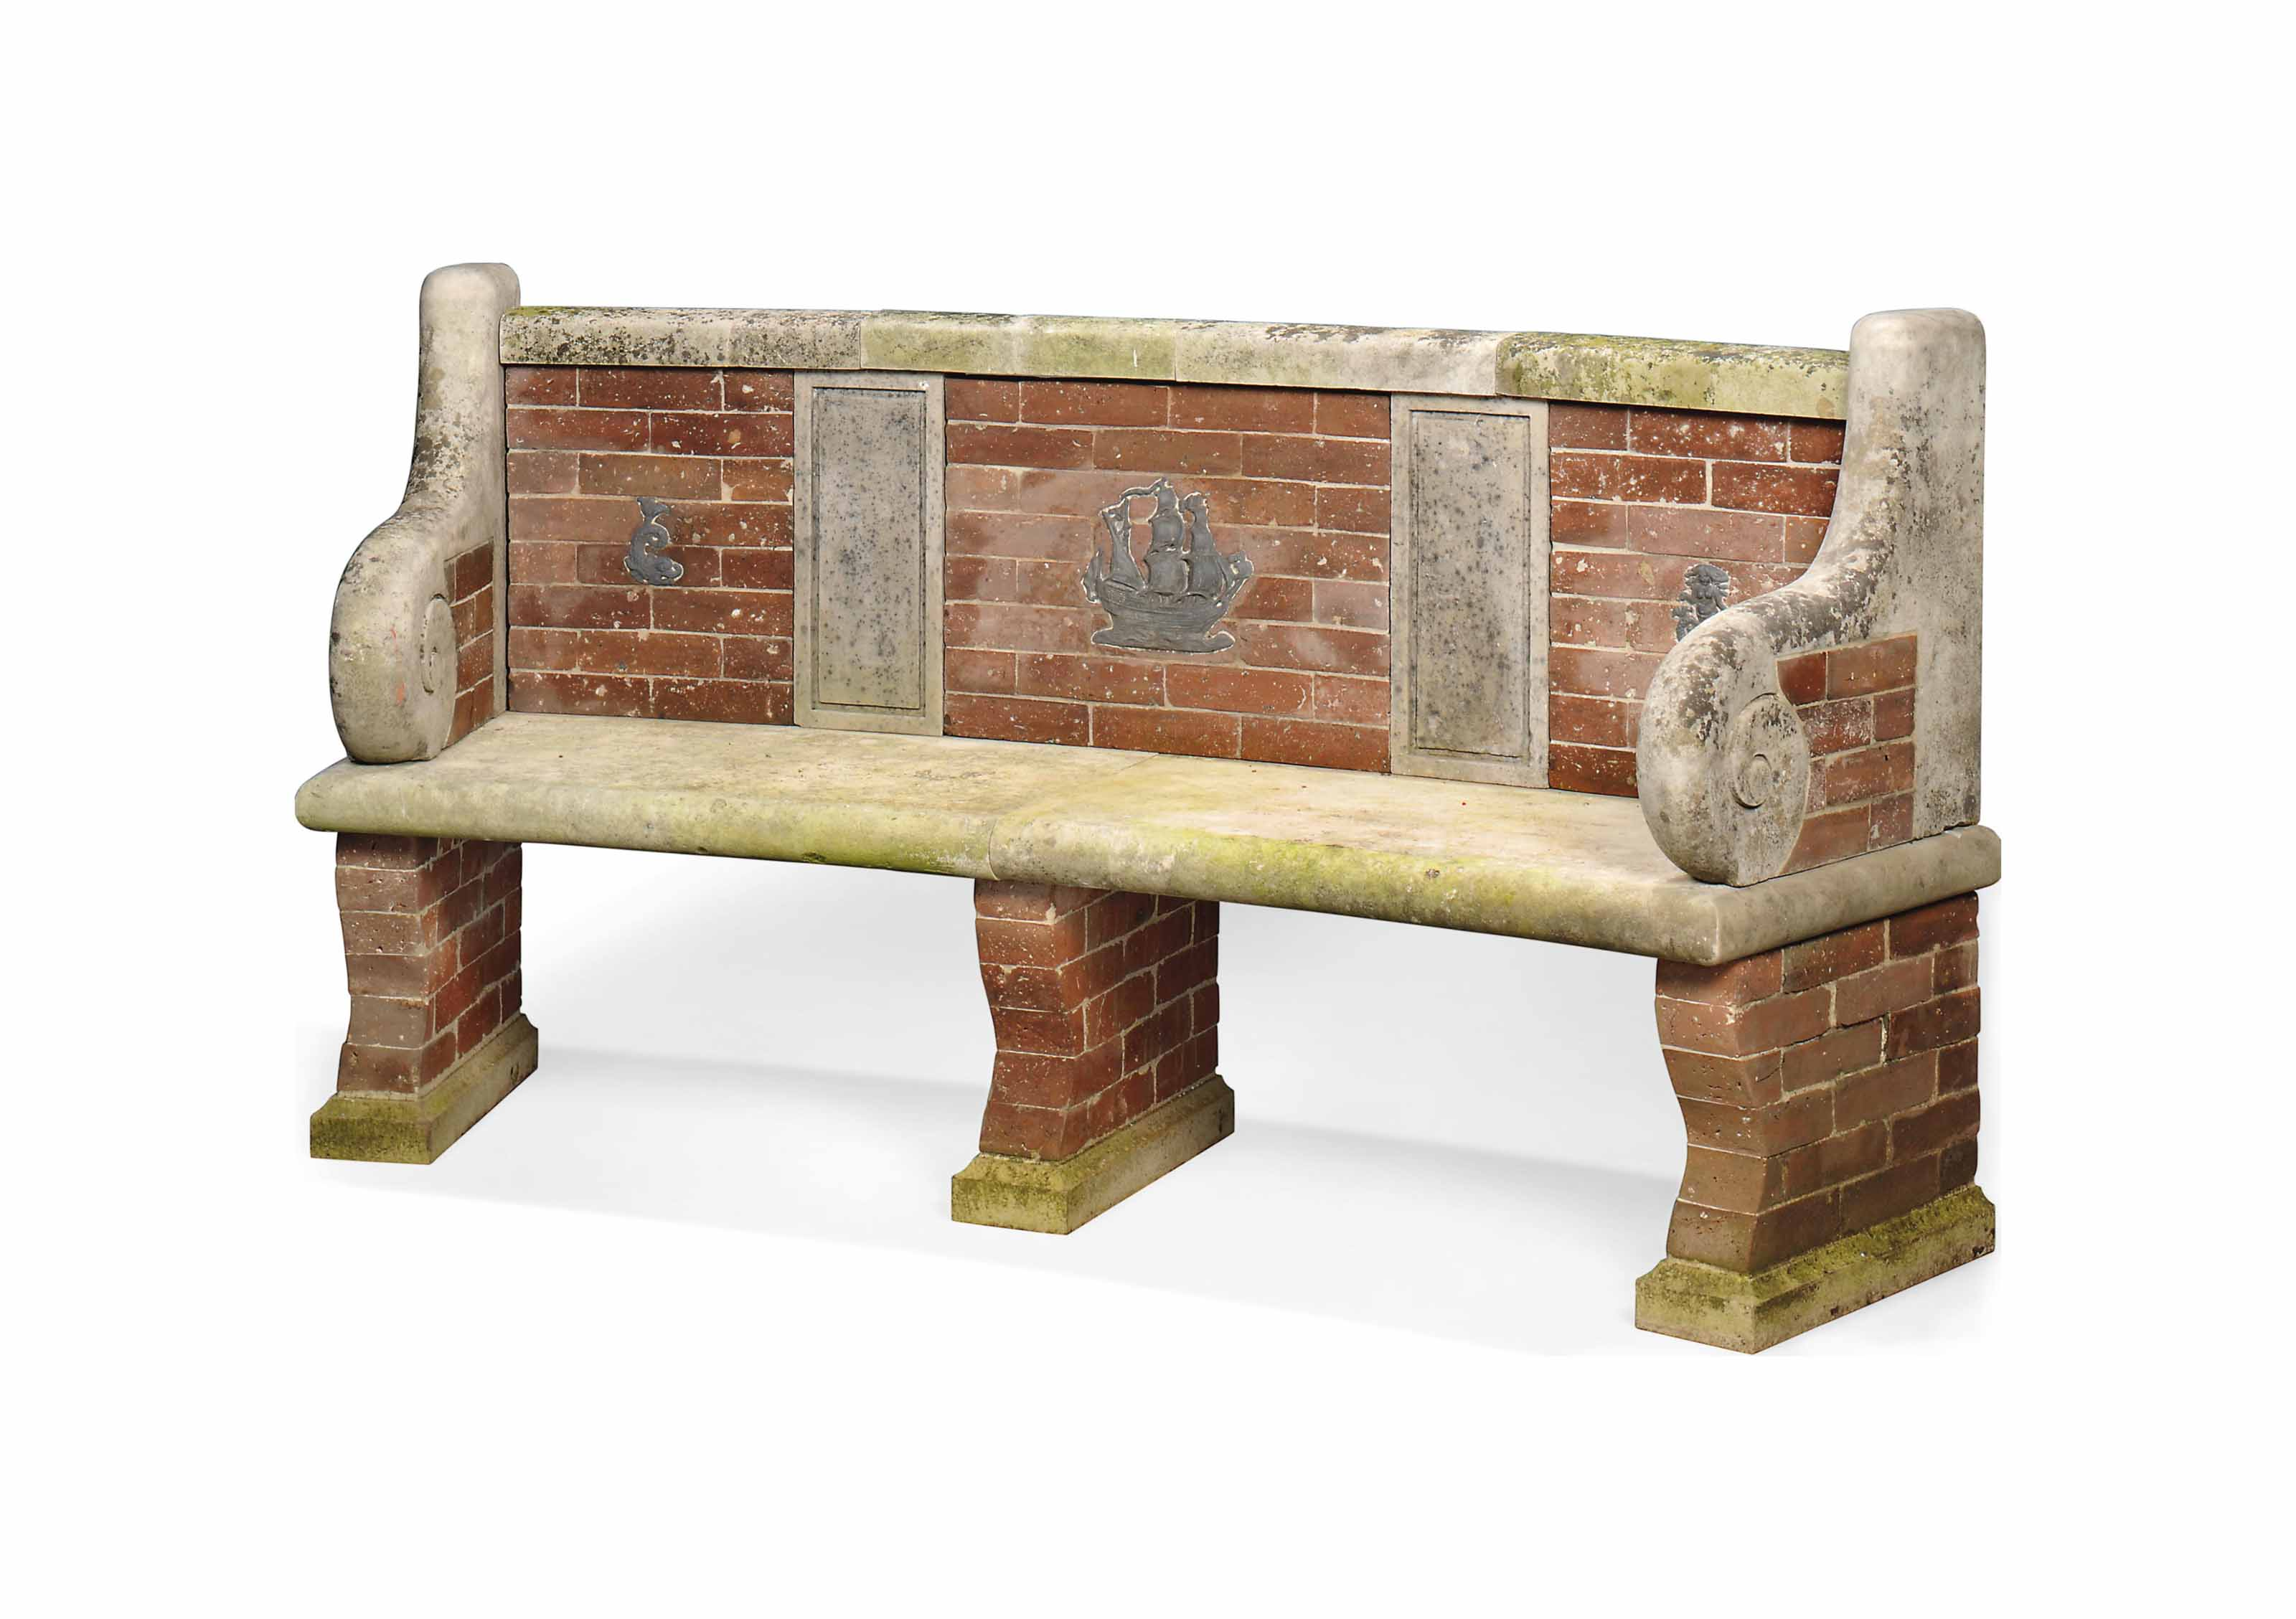 A LIMESTONE AND BRICK CURVED G